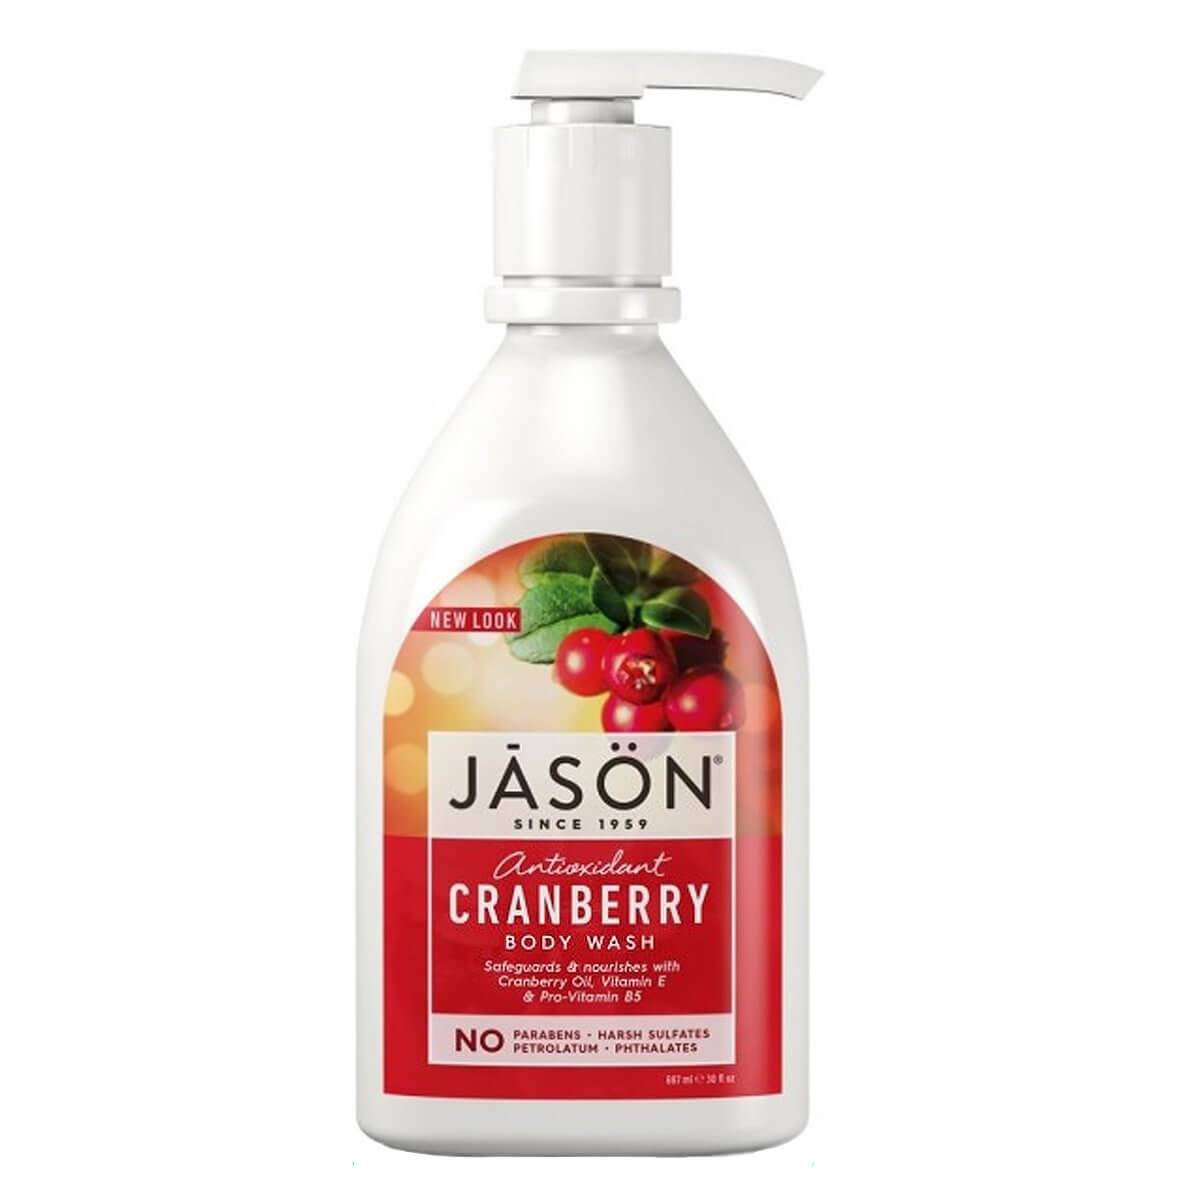 Jason Cranberry Satin Body Wash Pump - Anti-Oxidant